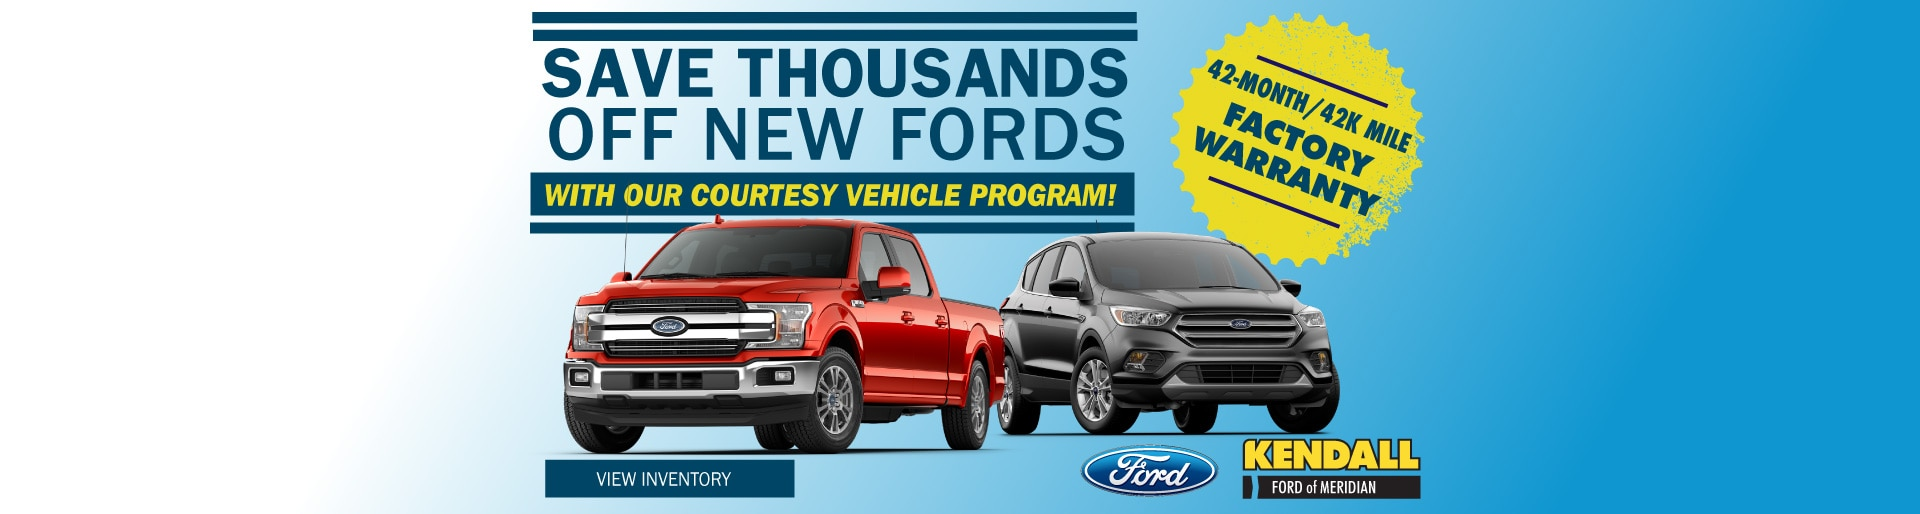 New & Certified Ford Dealership   Used Cars for Sale   Kendall Ford